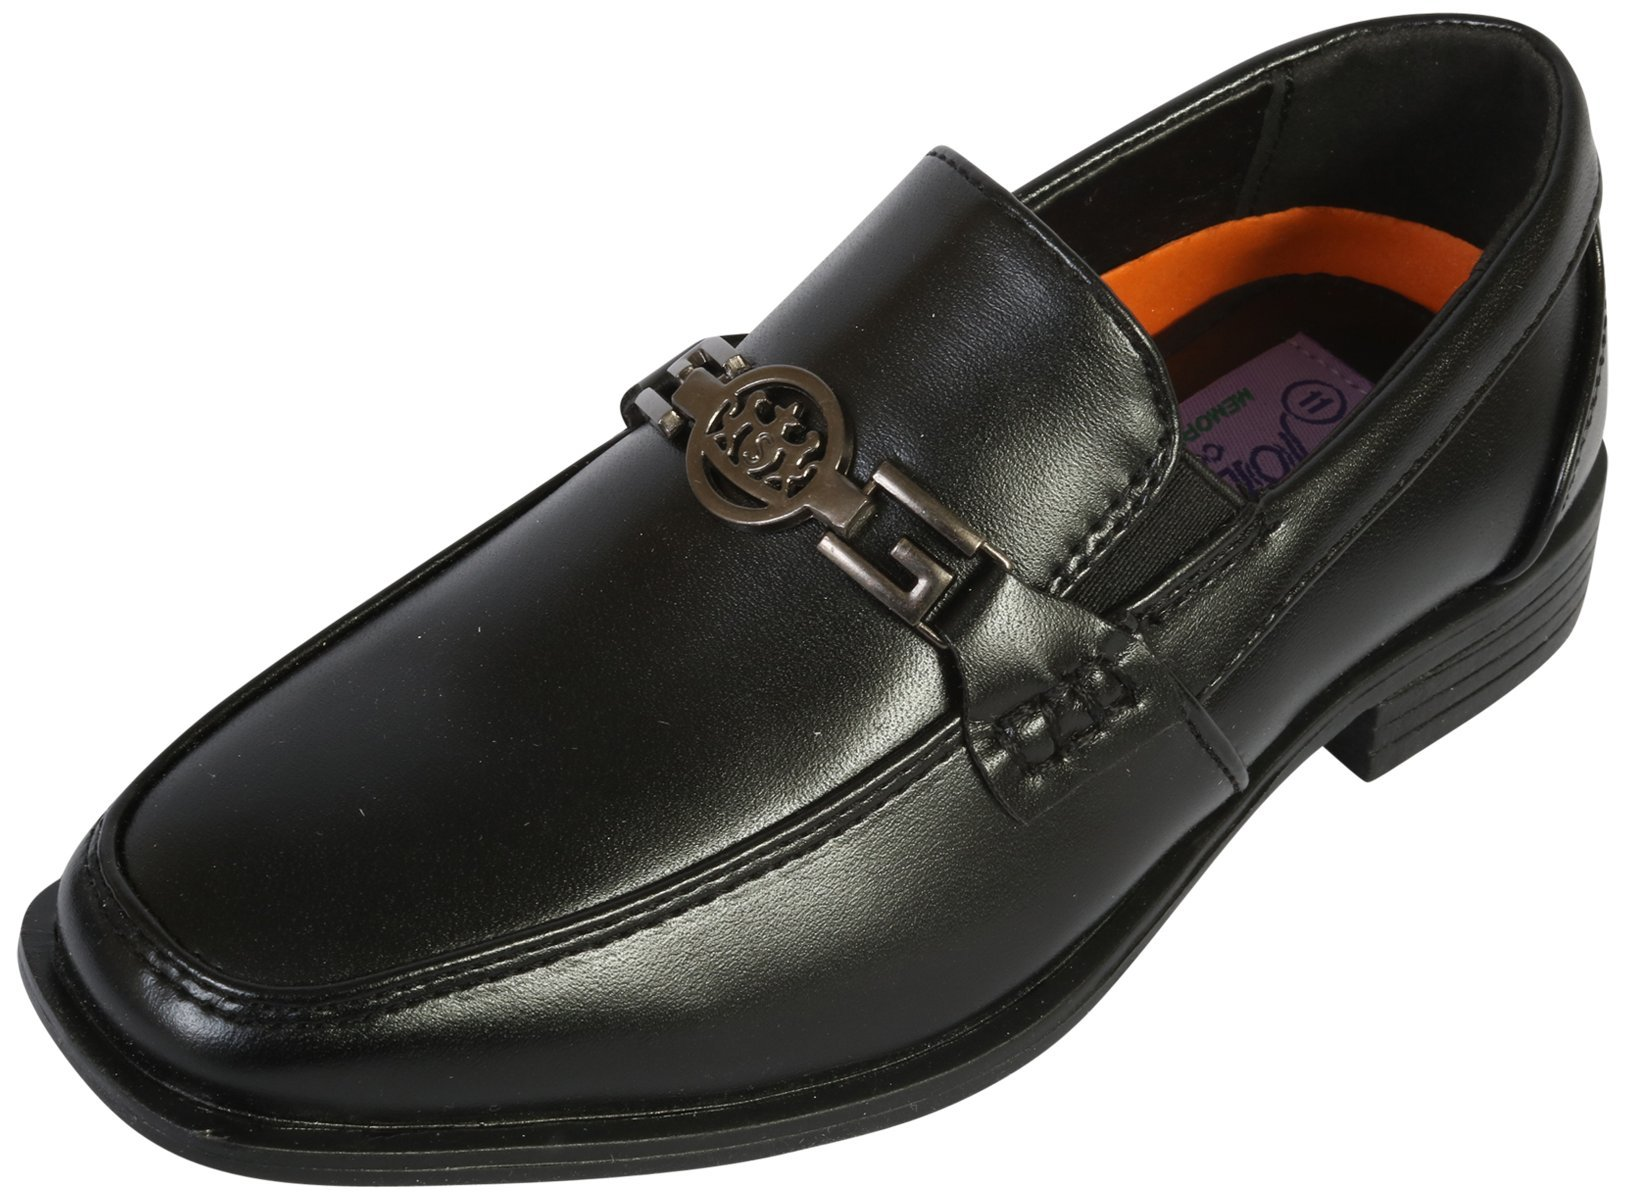 Jodano Collection Boys Comfort Slip On Loafers, Black Medallion, 4 M US Big Kid' by Jodano Collection